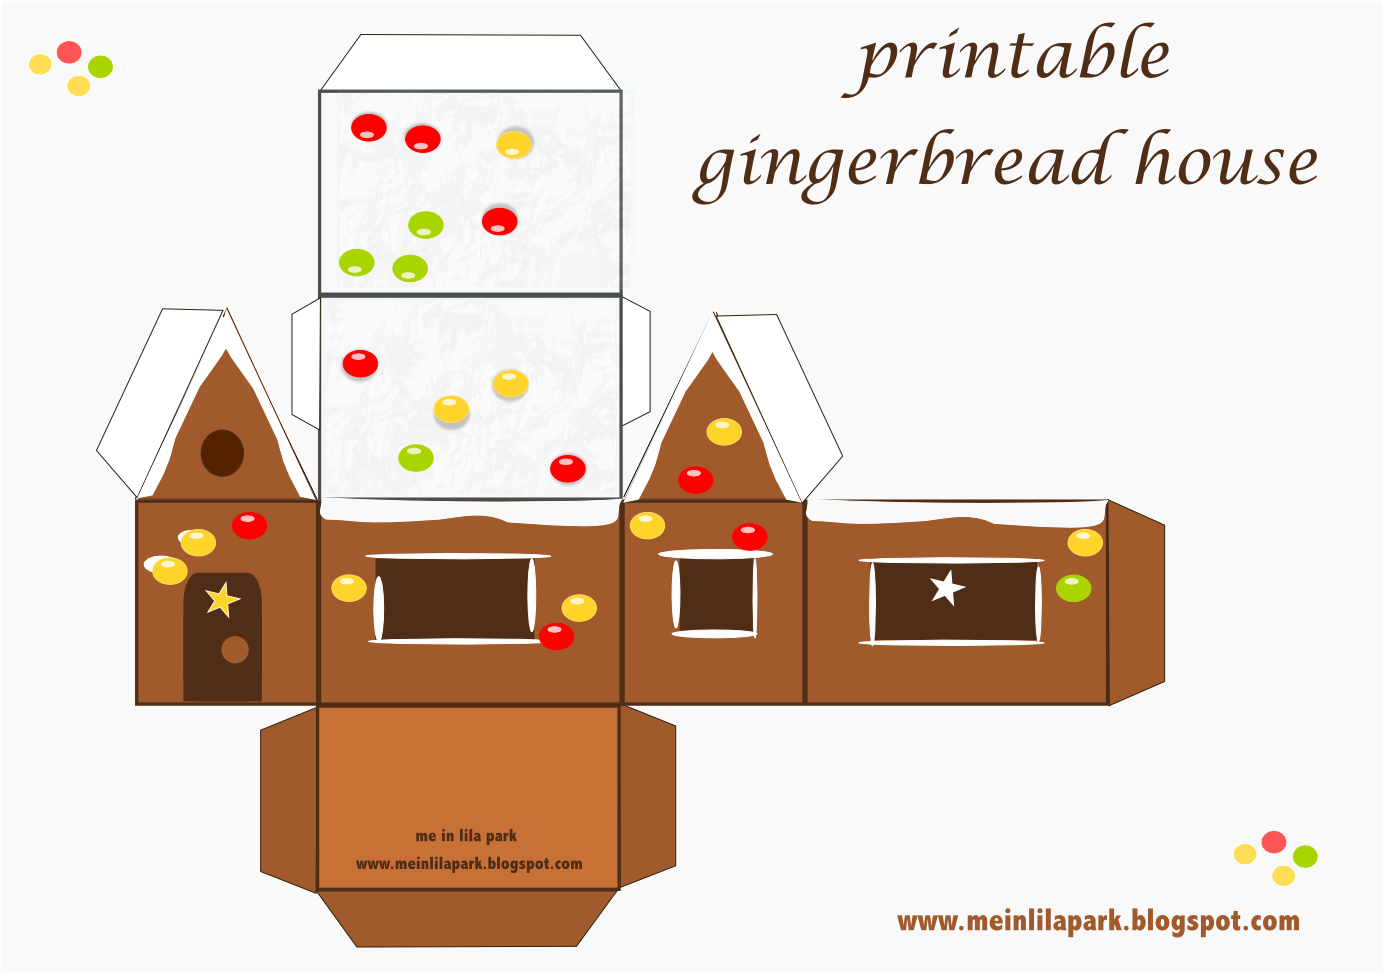 Amazing image for gingerbread house printable template